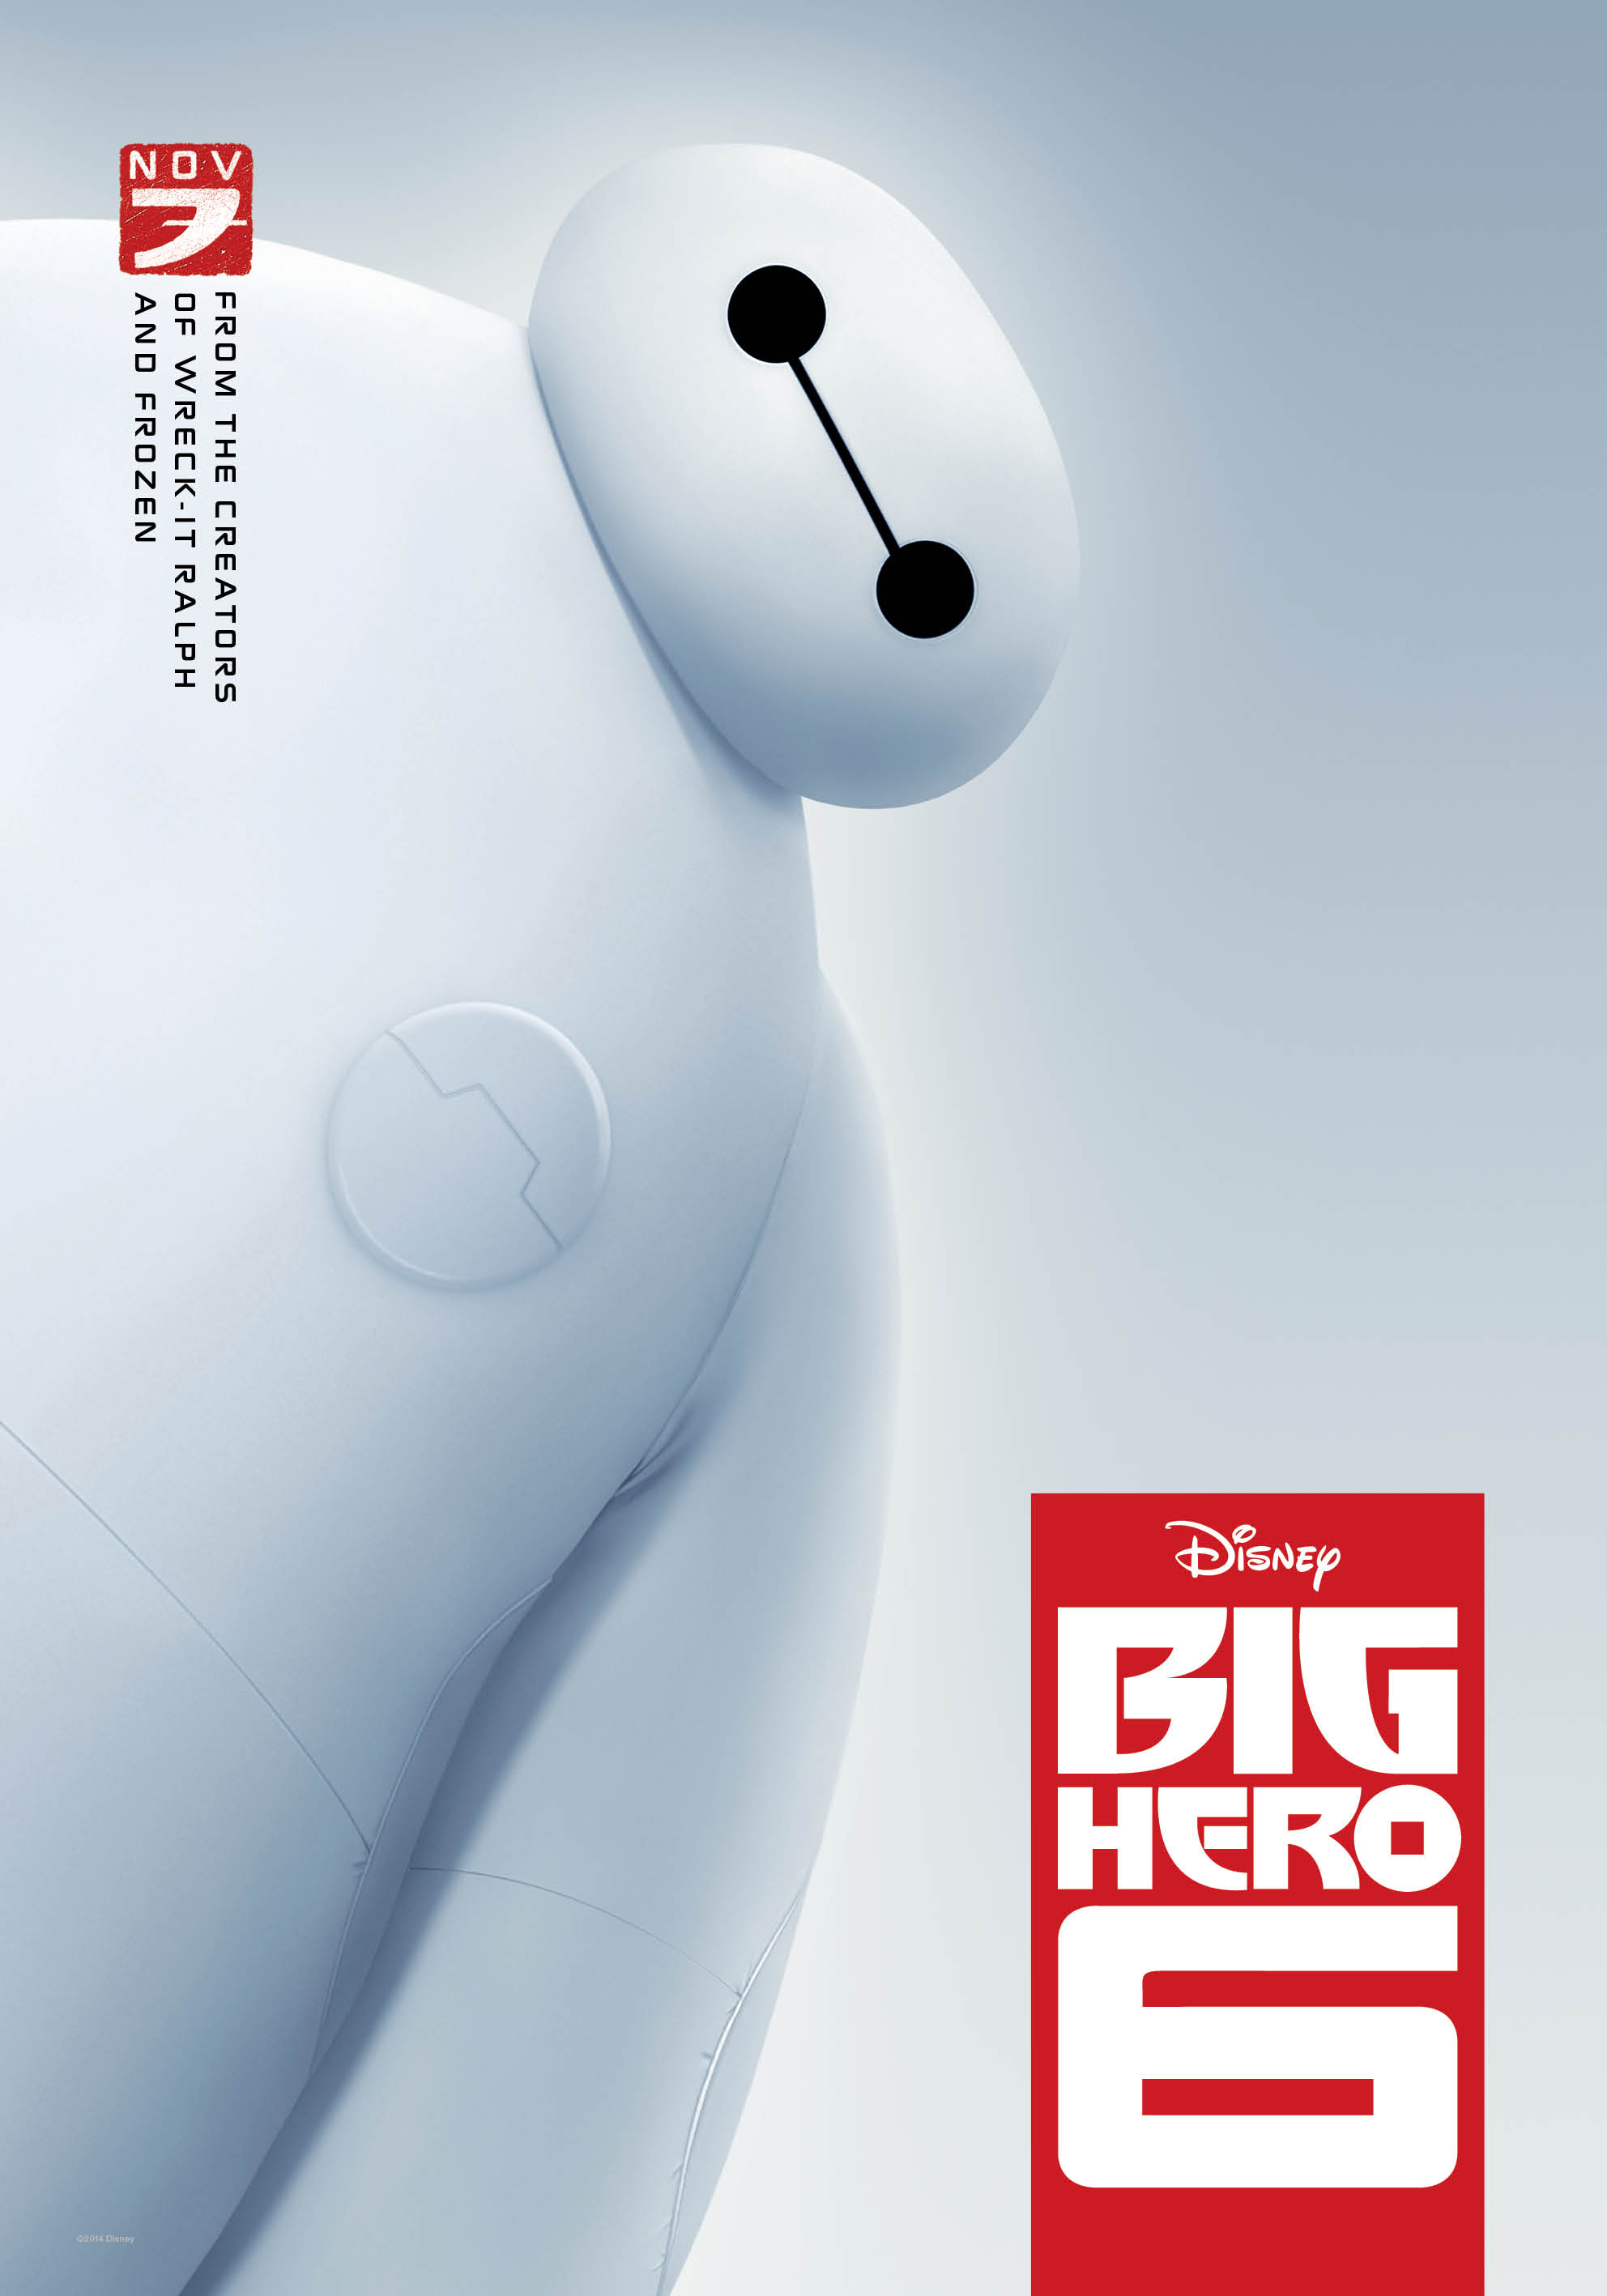 Big hero 6 credits scene they are not only books - Big Hero 6 Credits Scene They Are Not Only Books 22